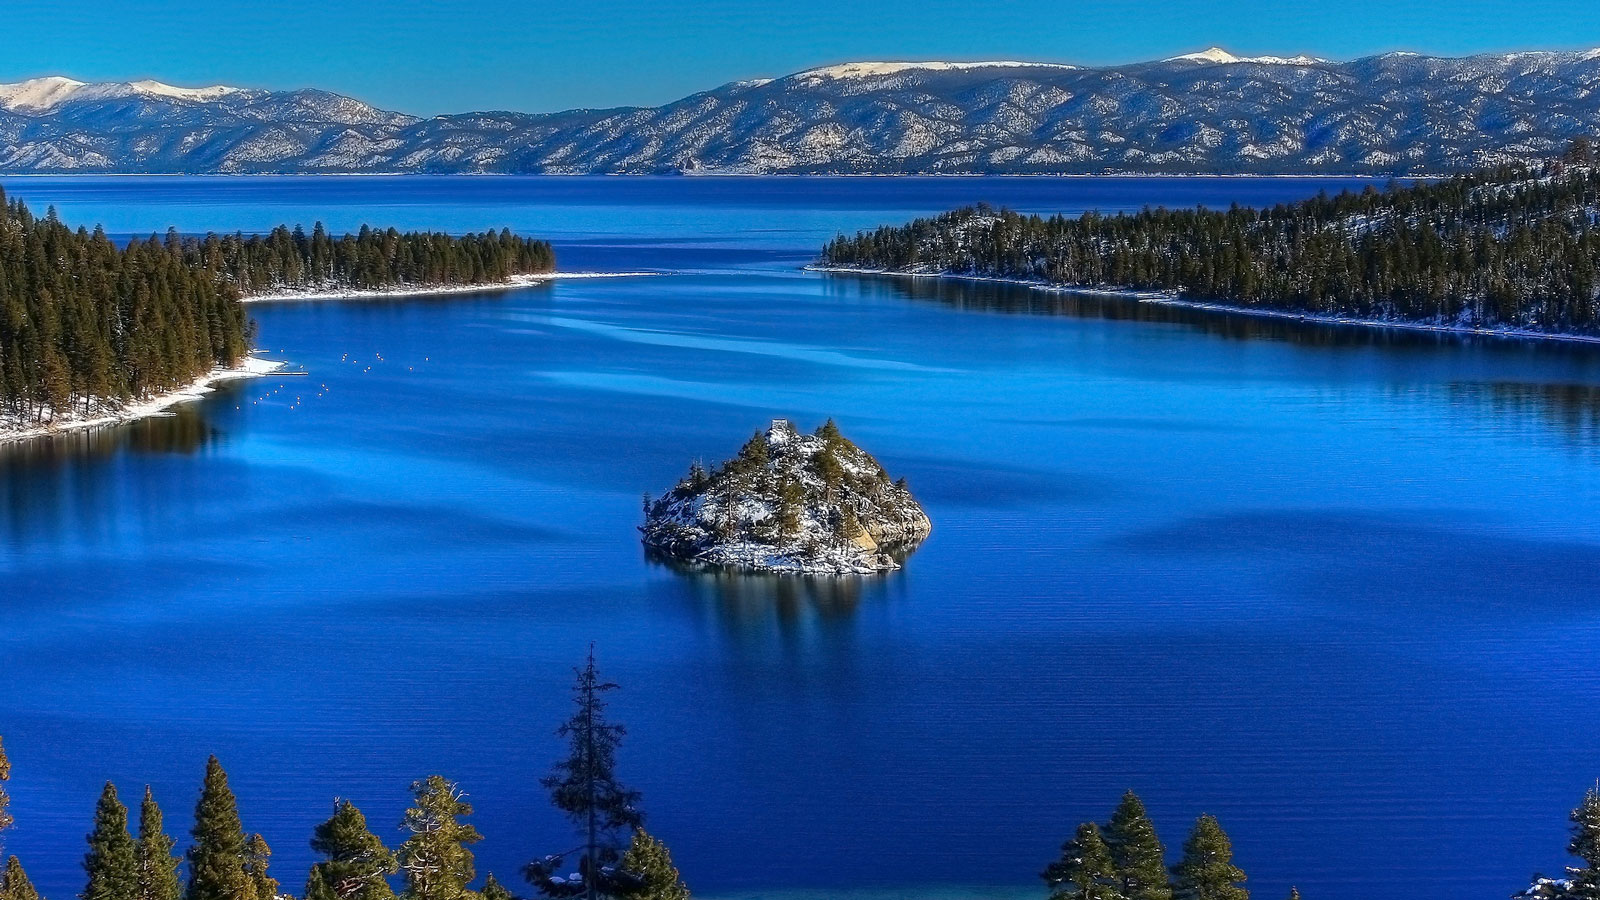 lake tahoe just gained 87billion gallons of water in 2